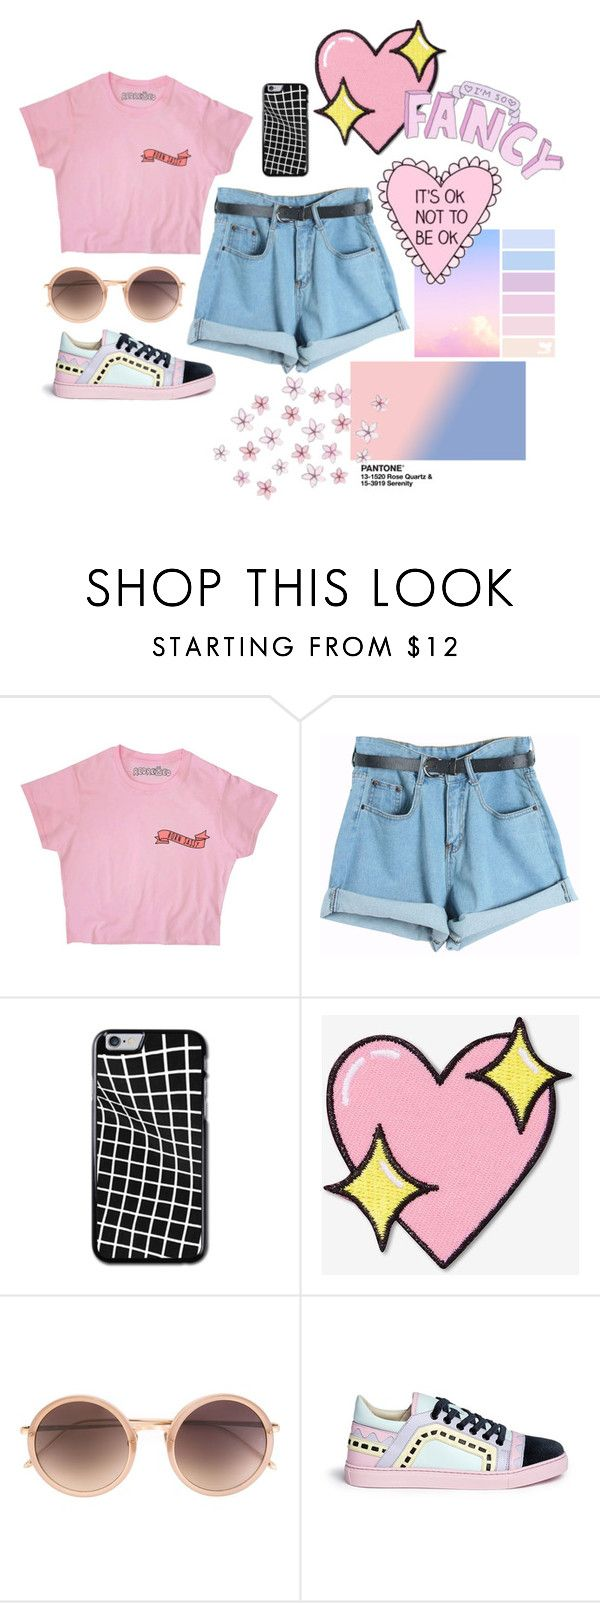 """Sin título #245"" by camilazeballo on Polyvore featuring moda, Chicnova Fashion, Big Bud Press, Linda Farrow y Sophia Webster"